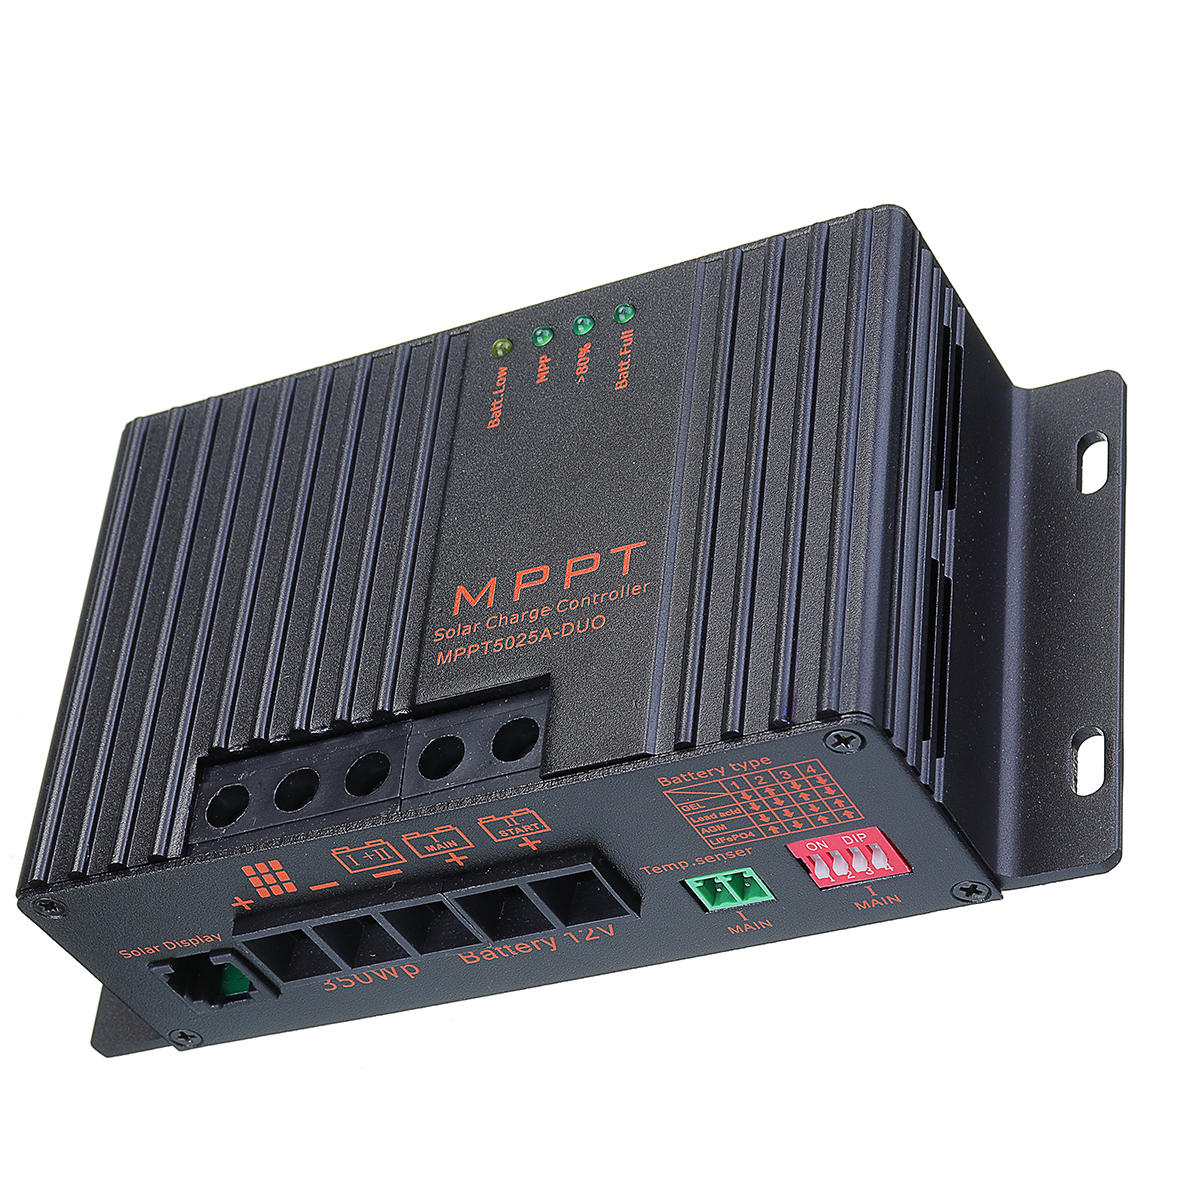 MPPT5025A-DUO MPPT 25A 12V Solar Charge Controller With LCD Solar Regulator For Solar Panel Charger